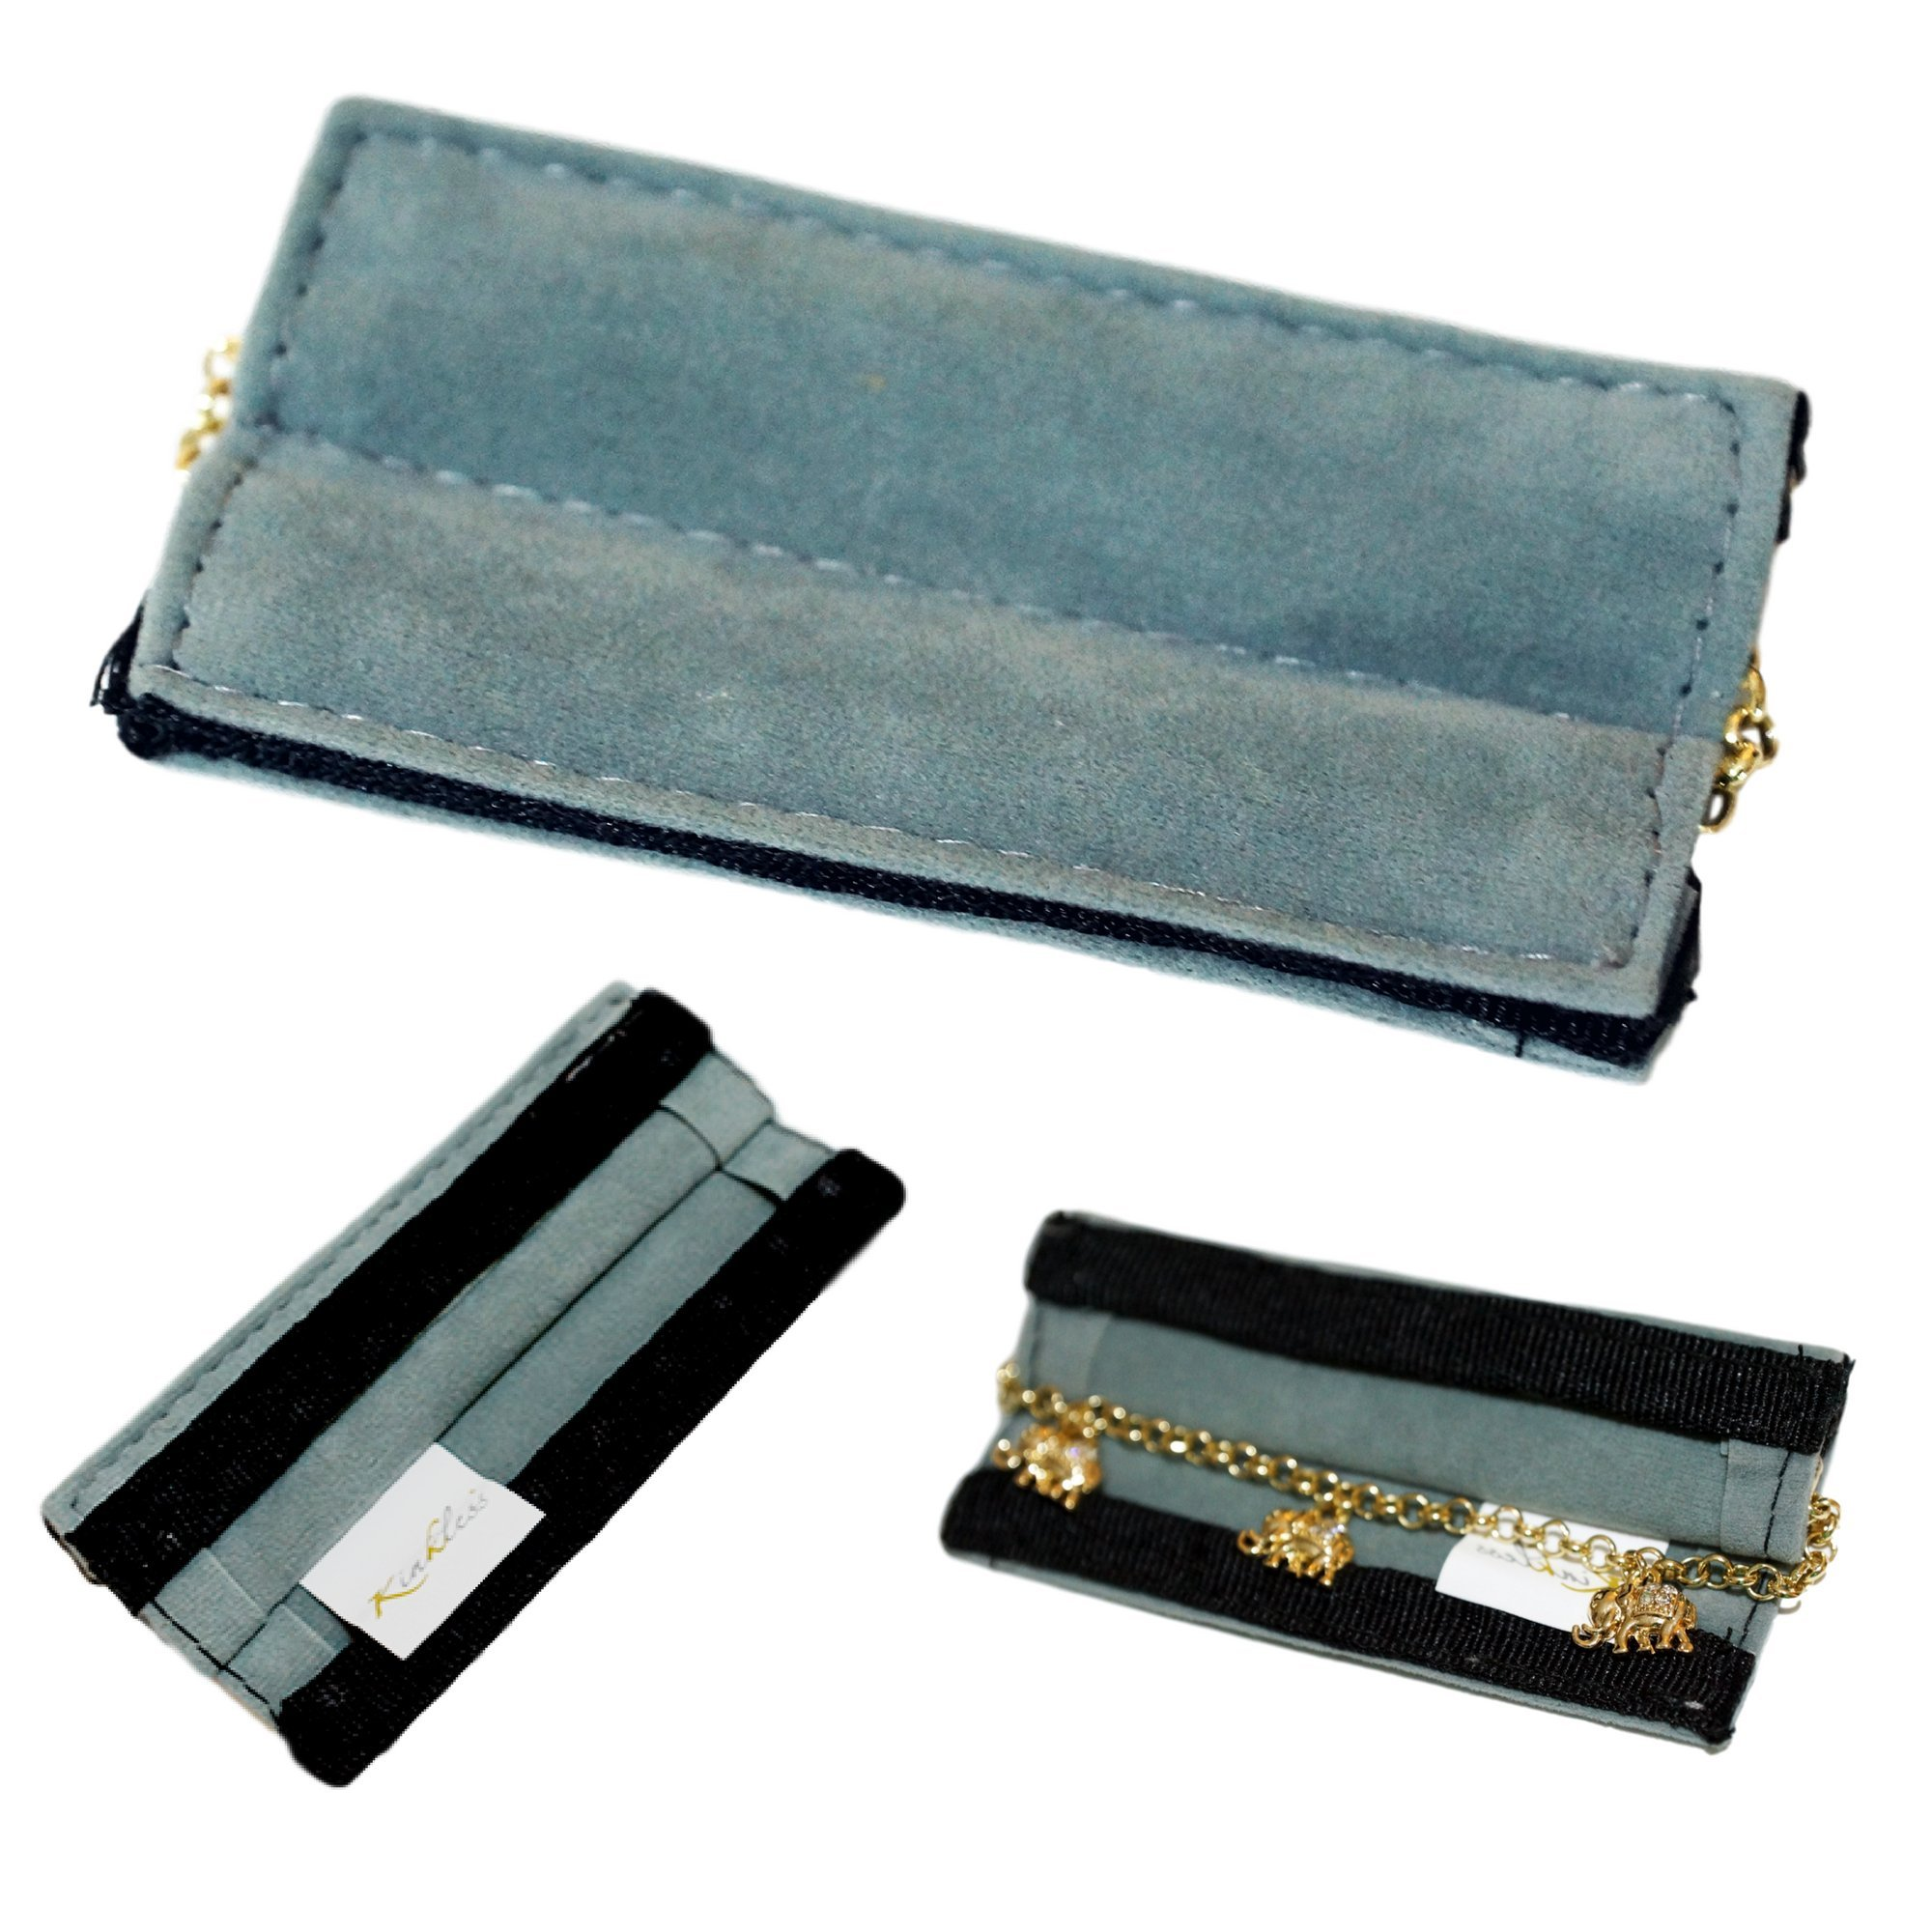 Anti-Tarnish Jewelry Carrier by Kinkless | Polishing Cloth, Kink-Free Travel Case, and Fine Jewelry Protector | Magnetic Zipper (Bracelet Carrier)